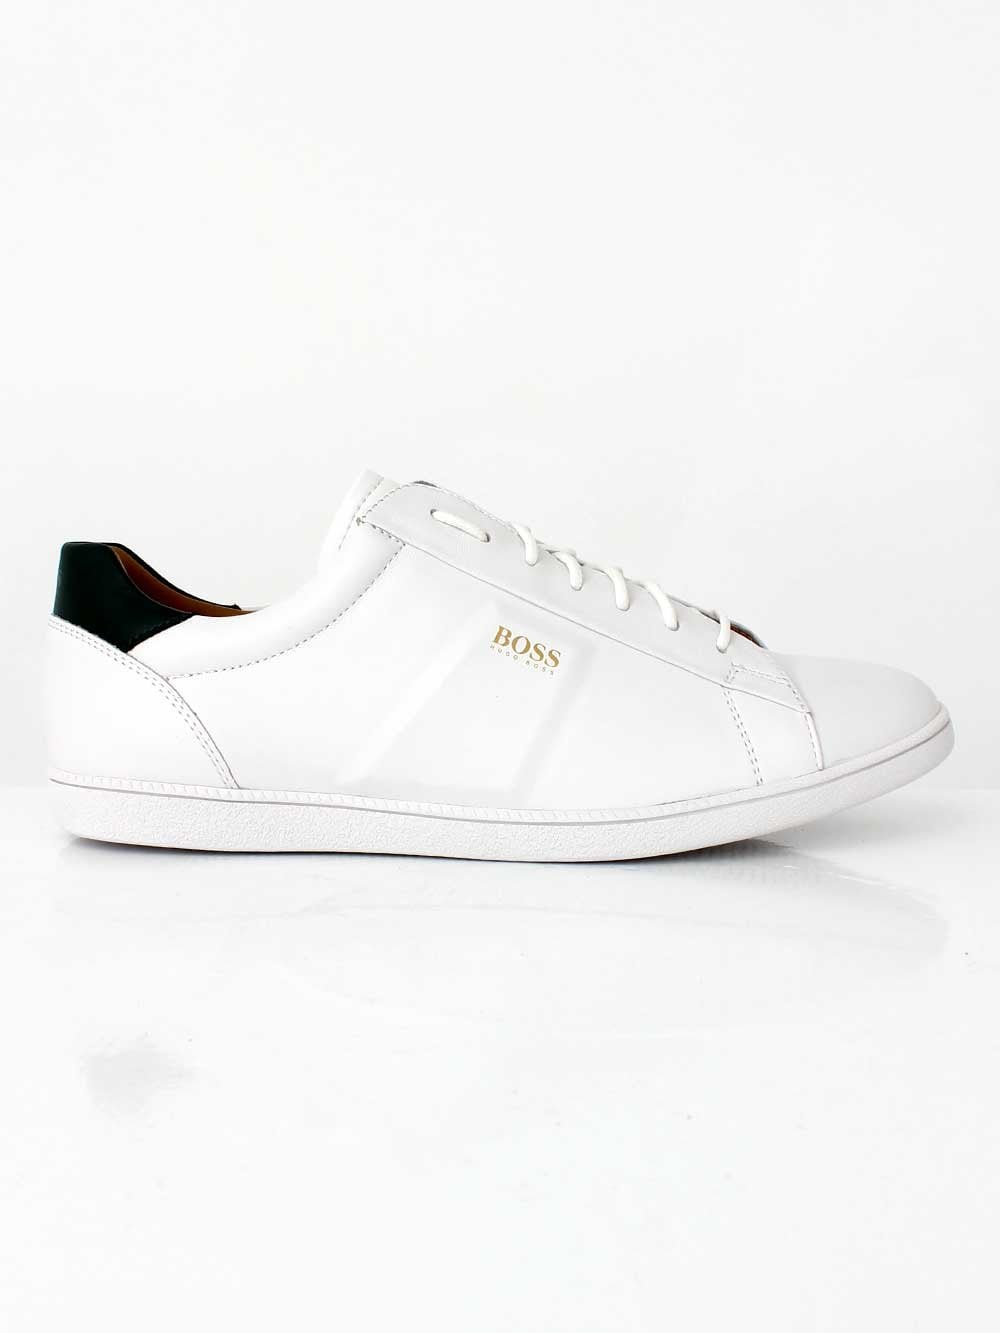 5deb69f4a5d8 Hugo Boss Rumba Tenn Trainer in Natural | Northern Threads